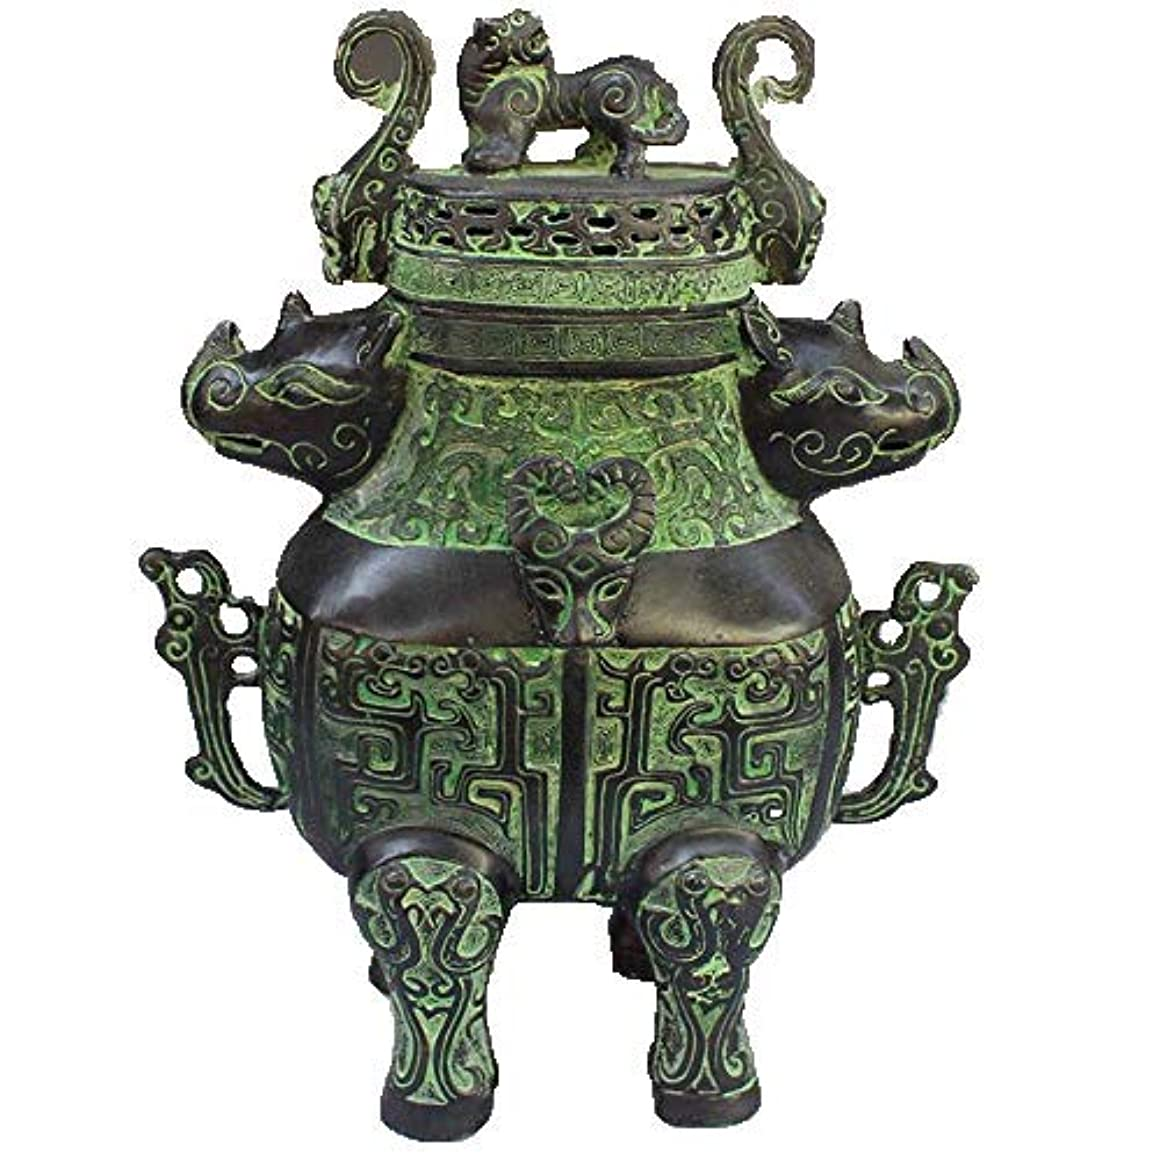 膿瘍助けになるフォーカスChinese Bronze rhinoceros head beast head incense burner statue